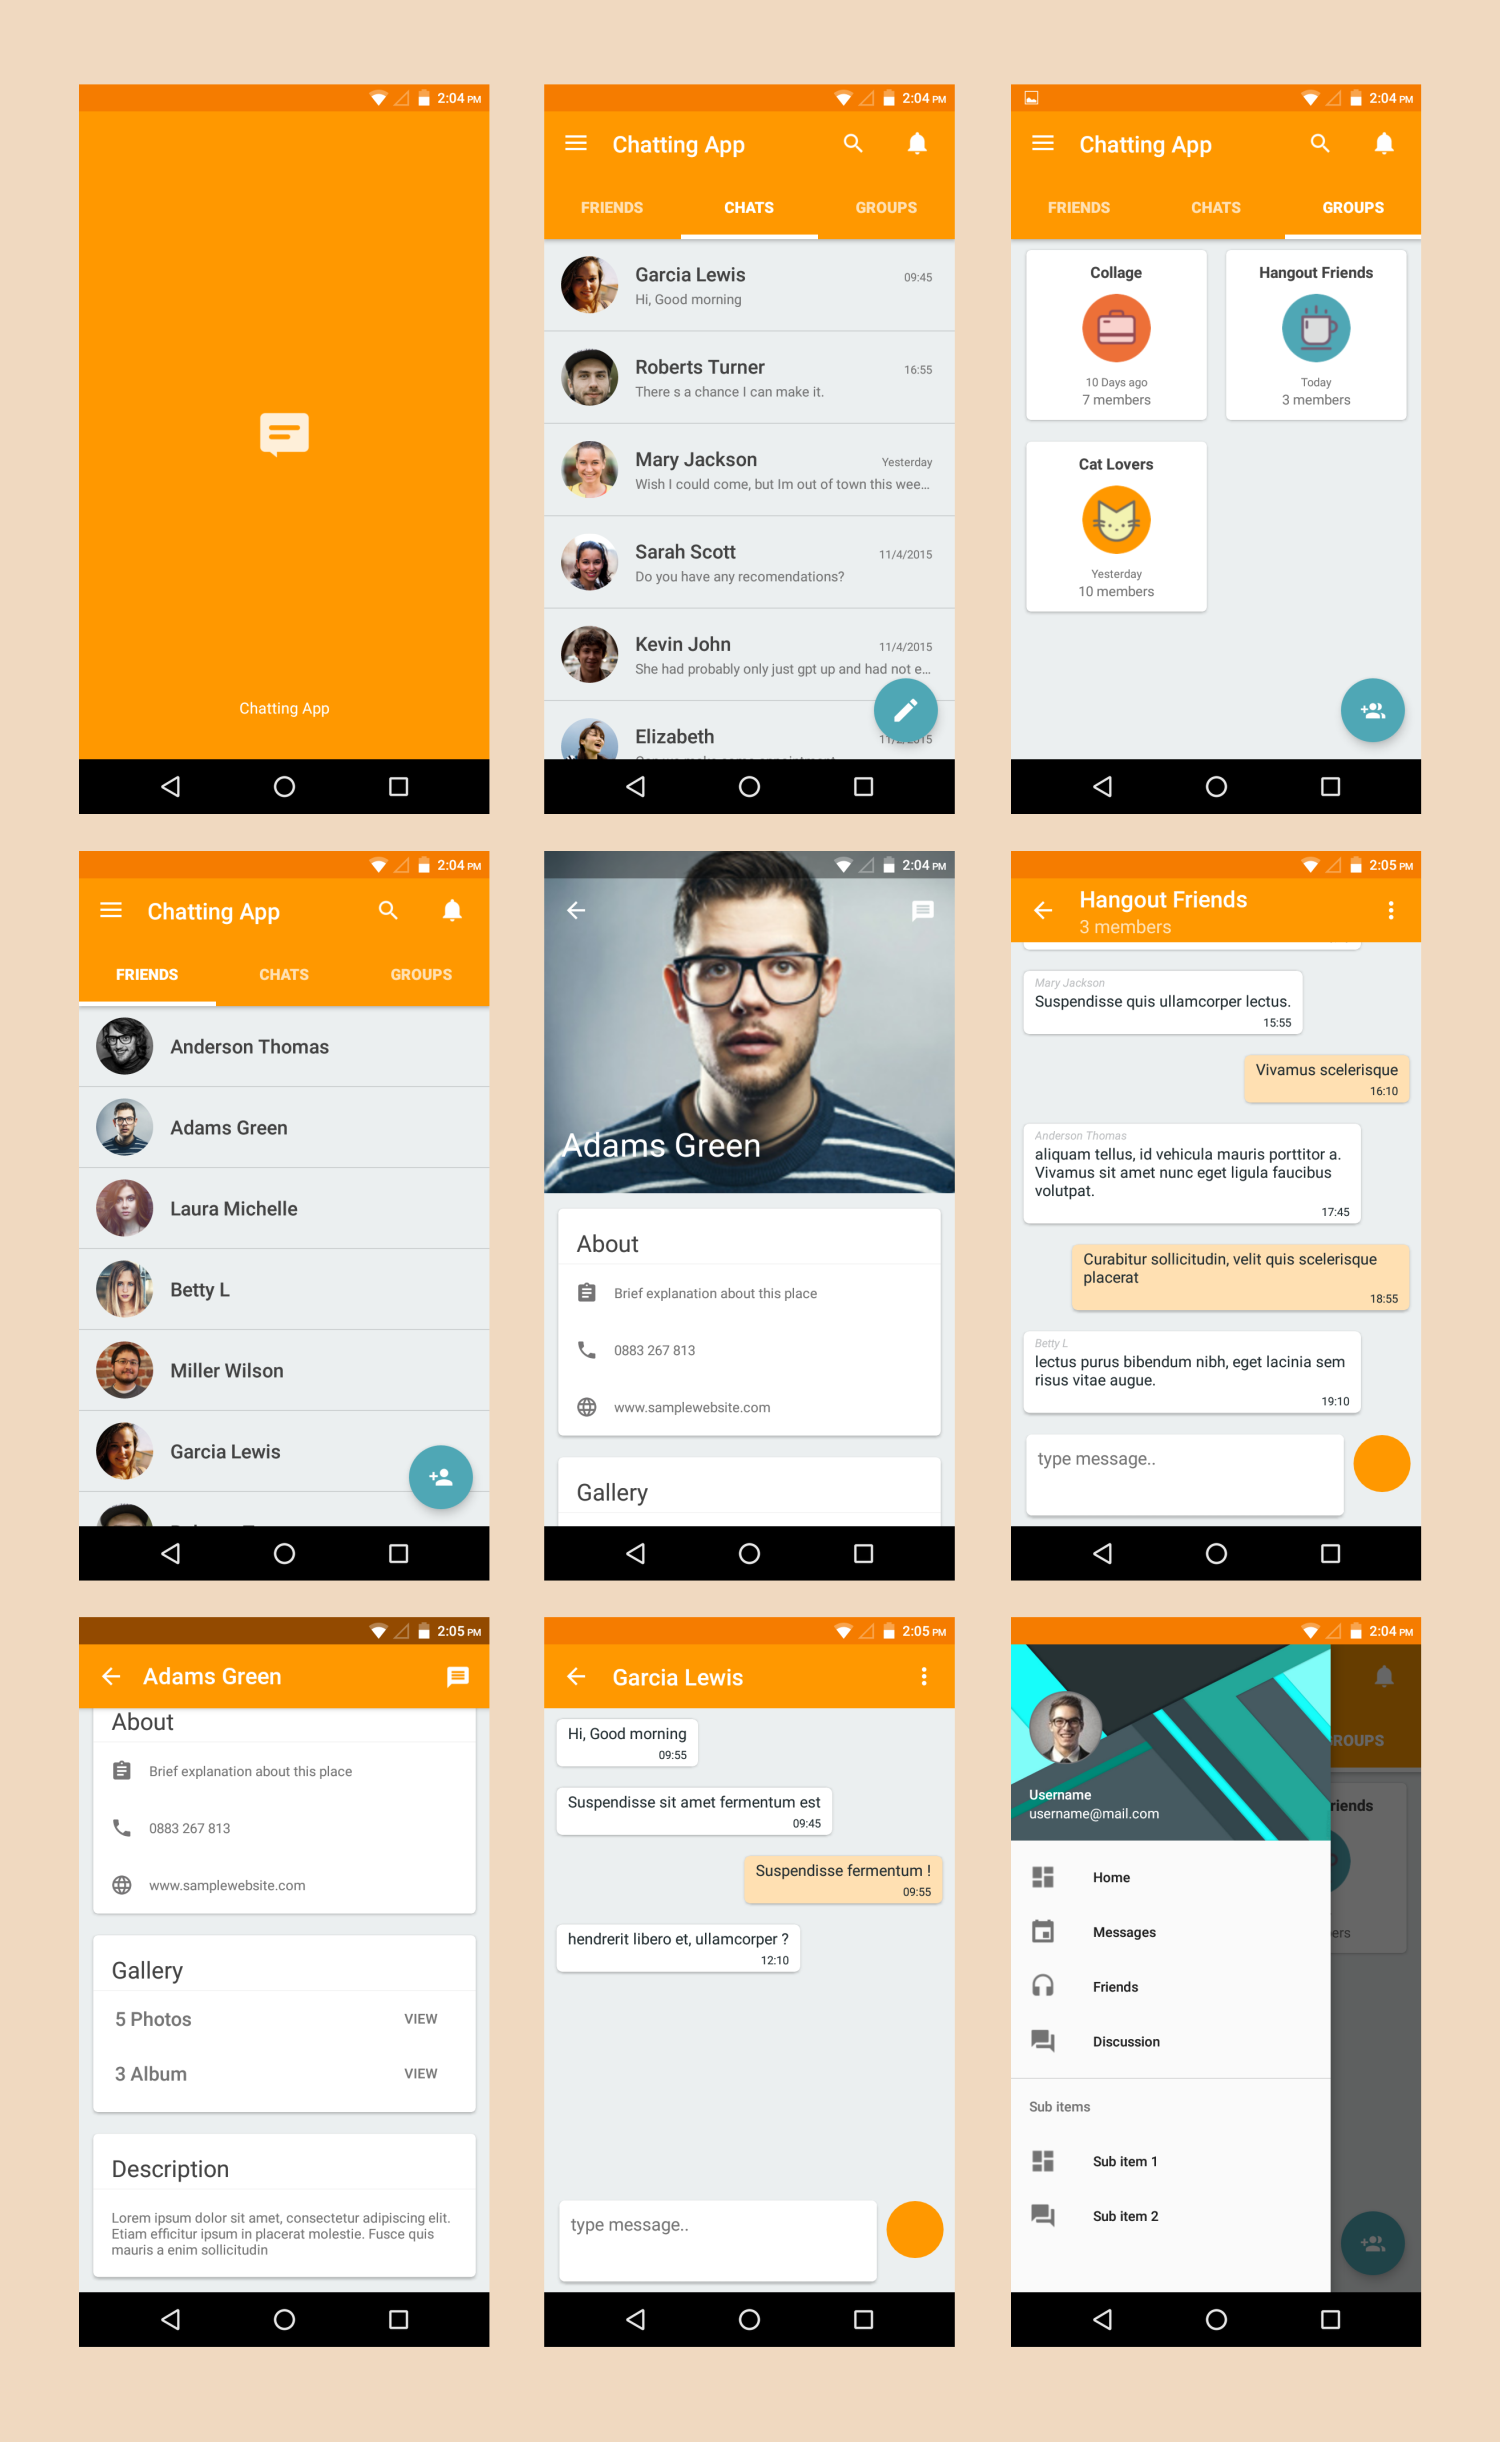 Chatting App Material Design Template on Behance